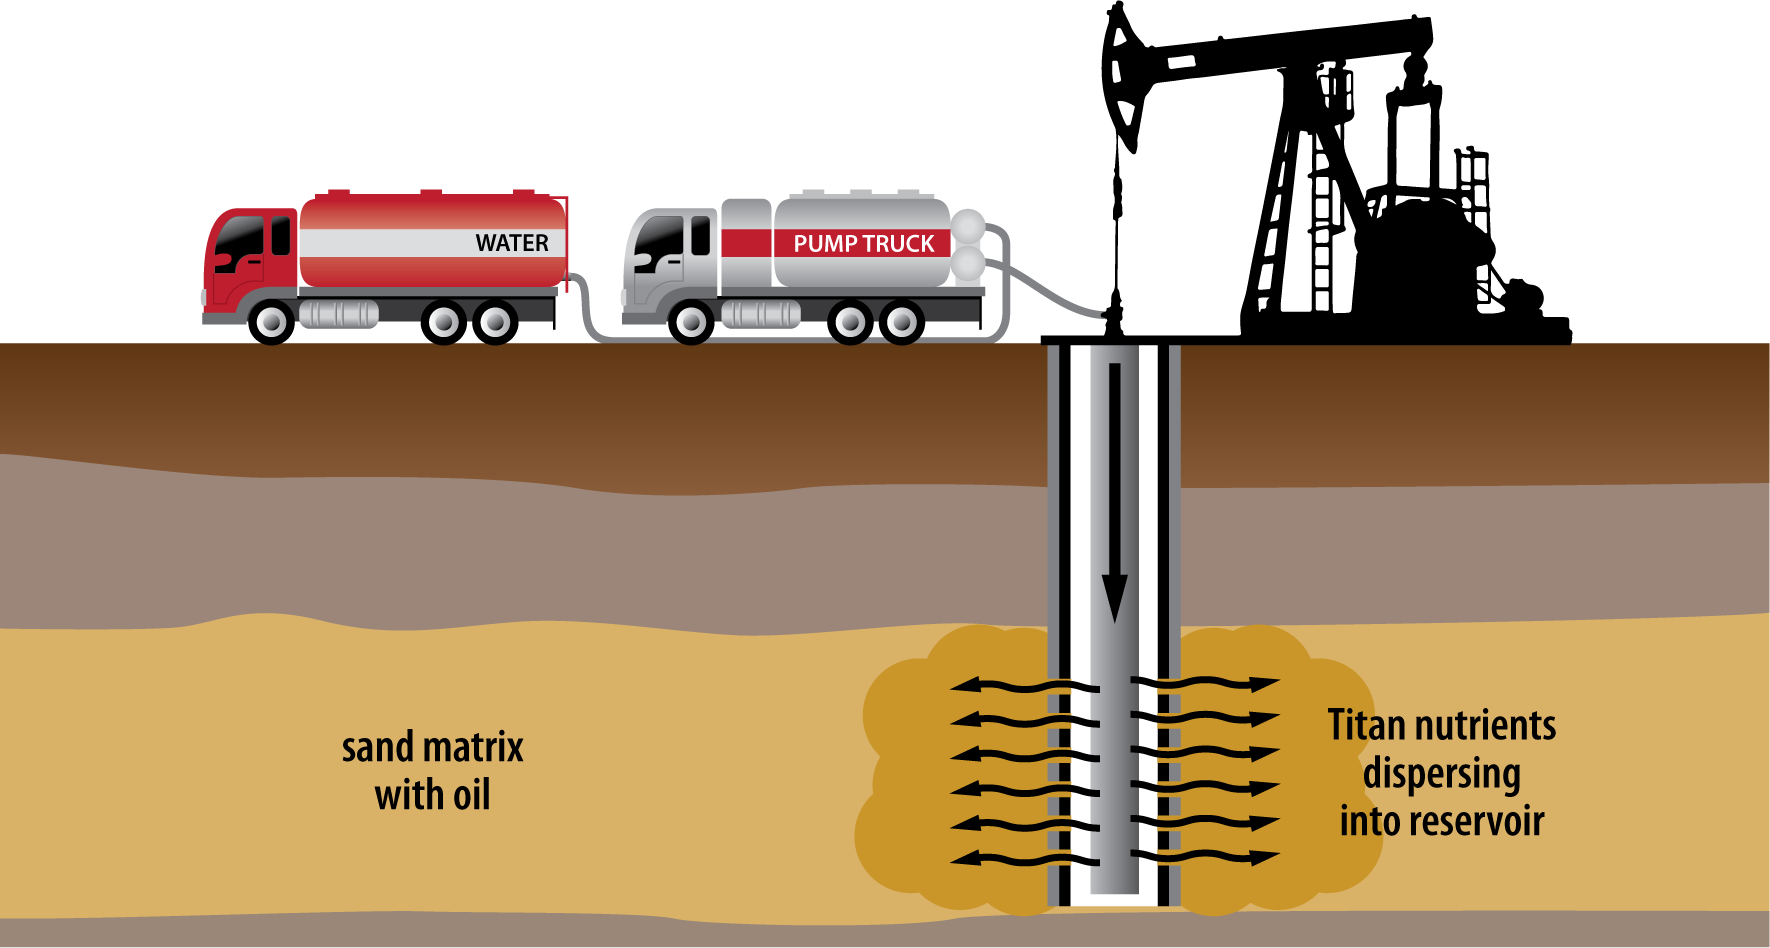 Illustration by Design Strategies for Titan Oil Recovery.